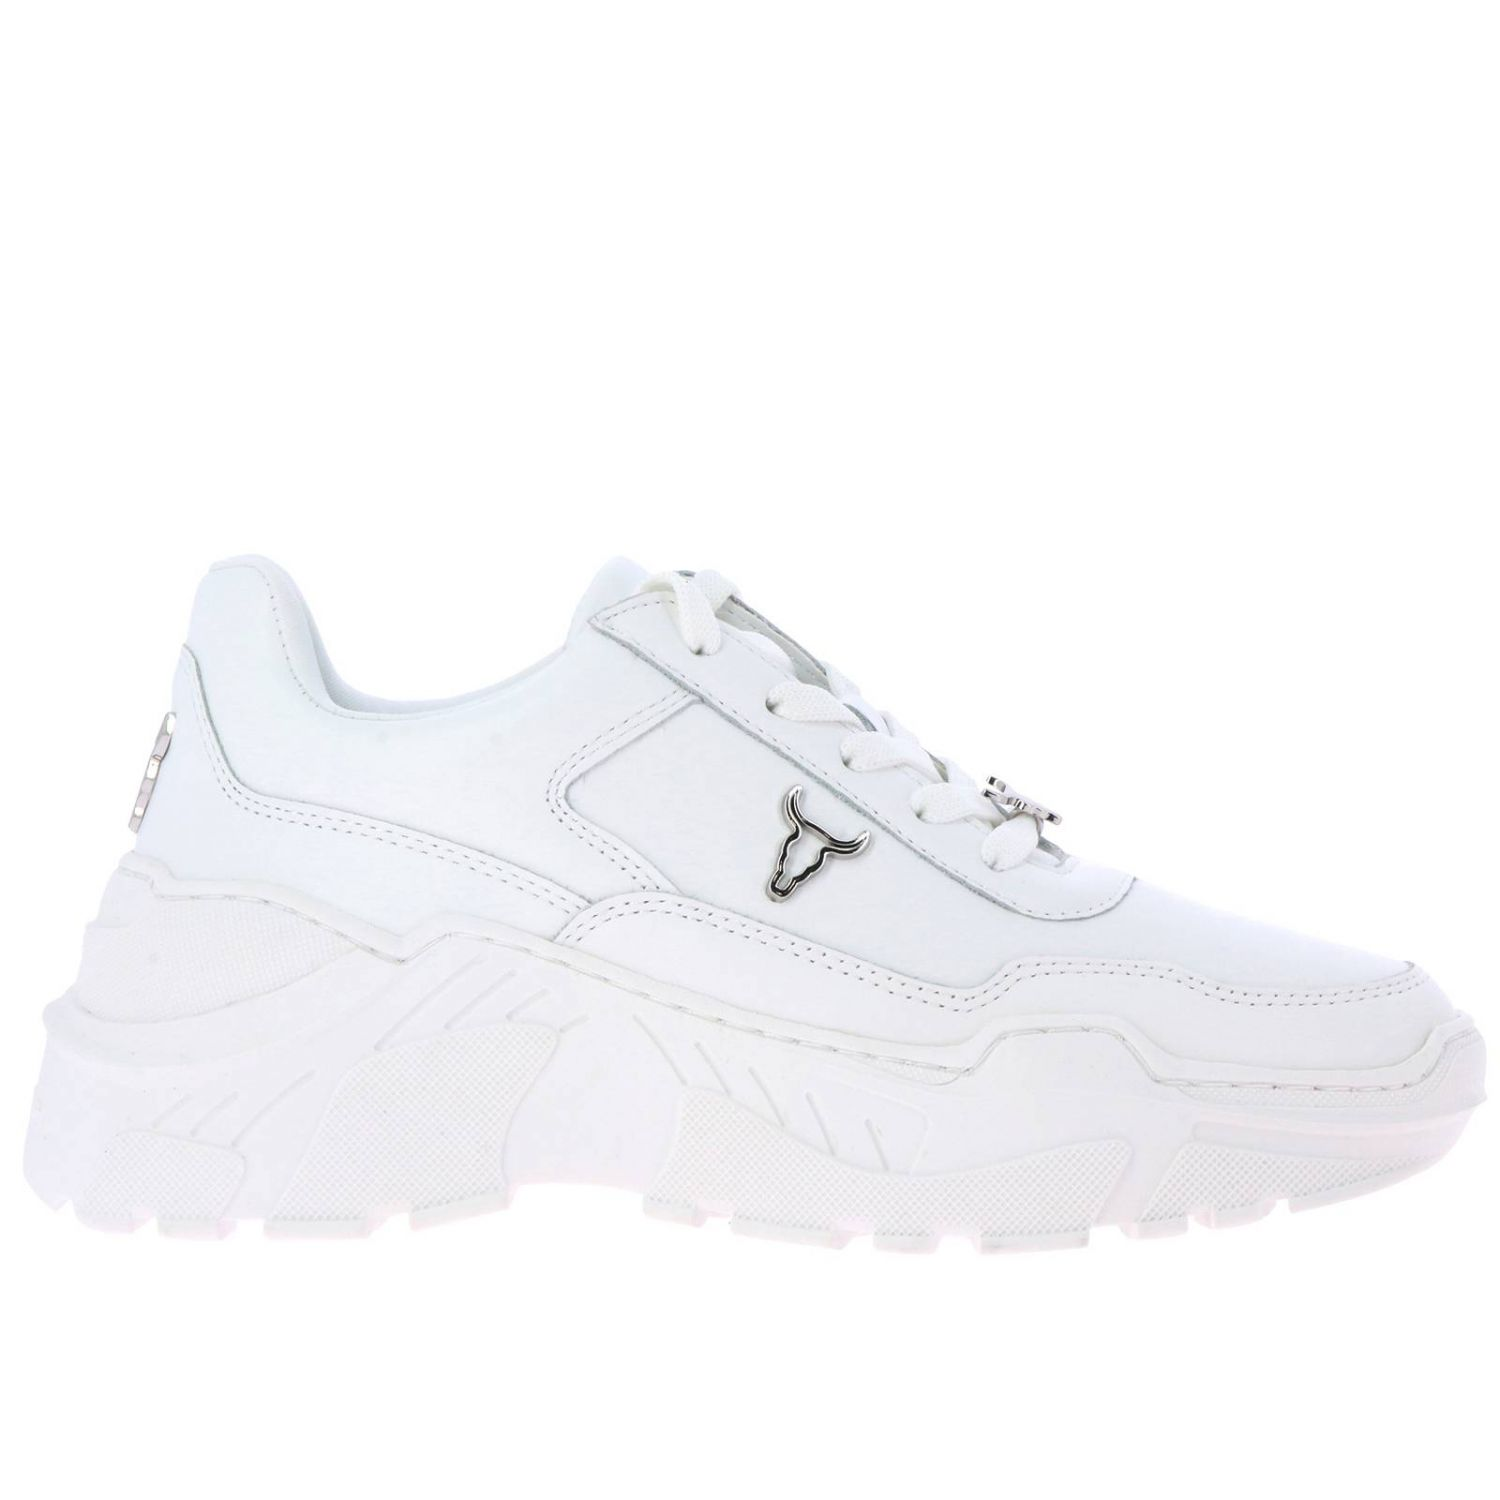 Sneakers women Windsorsmith white 1